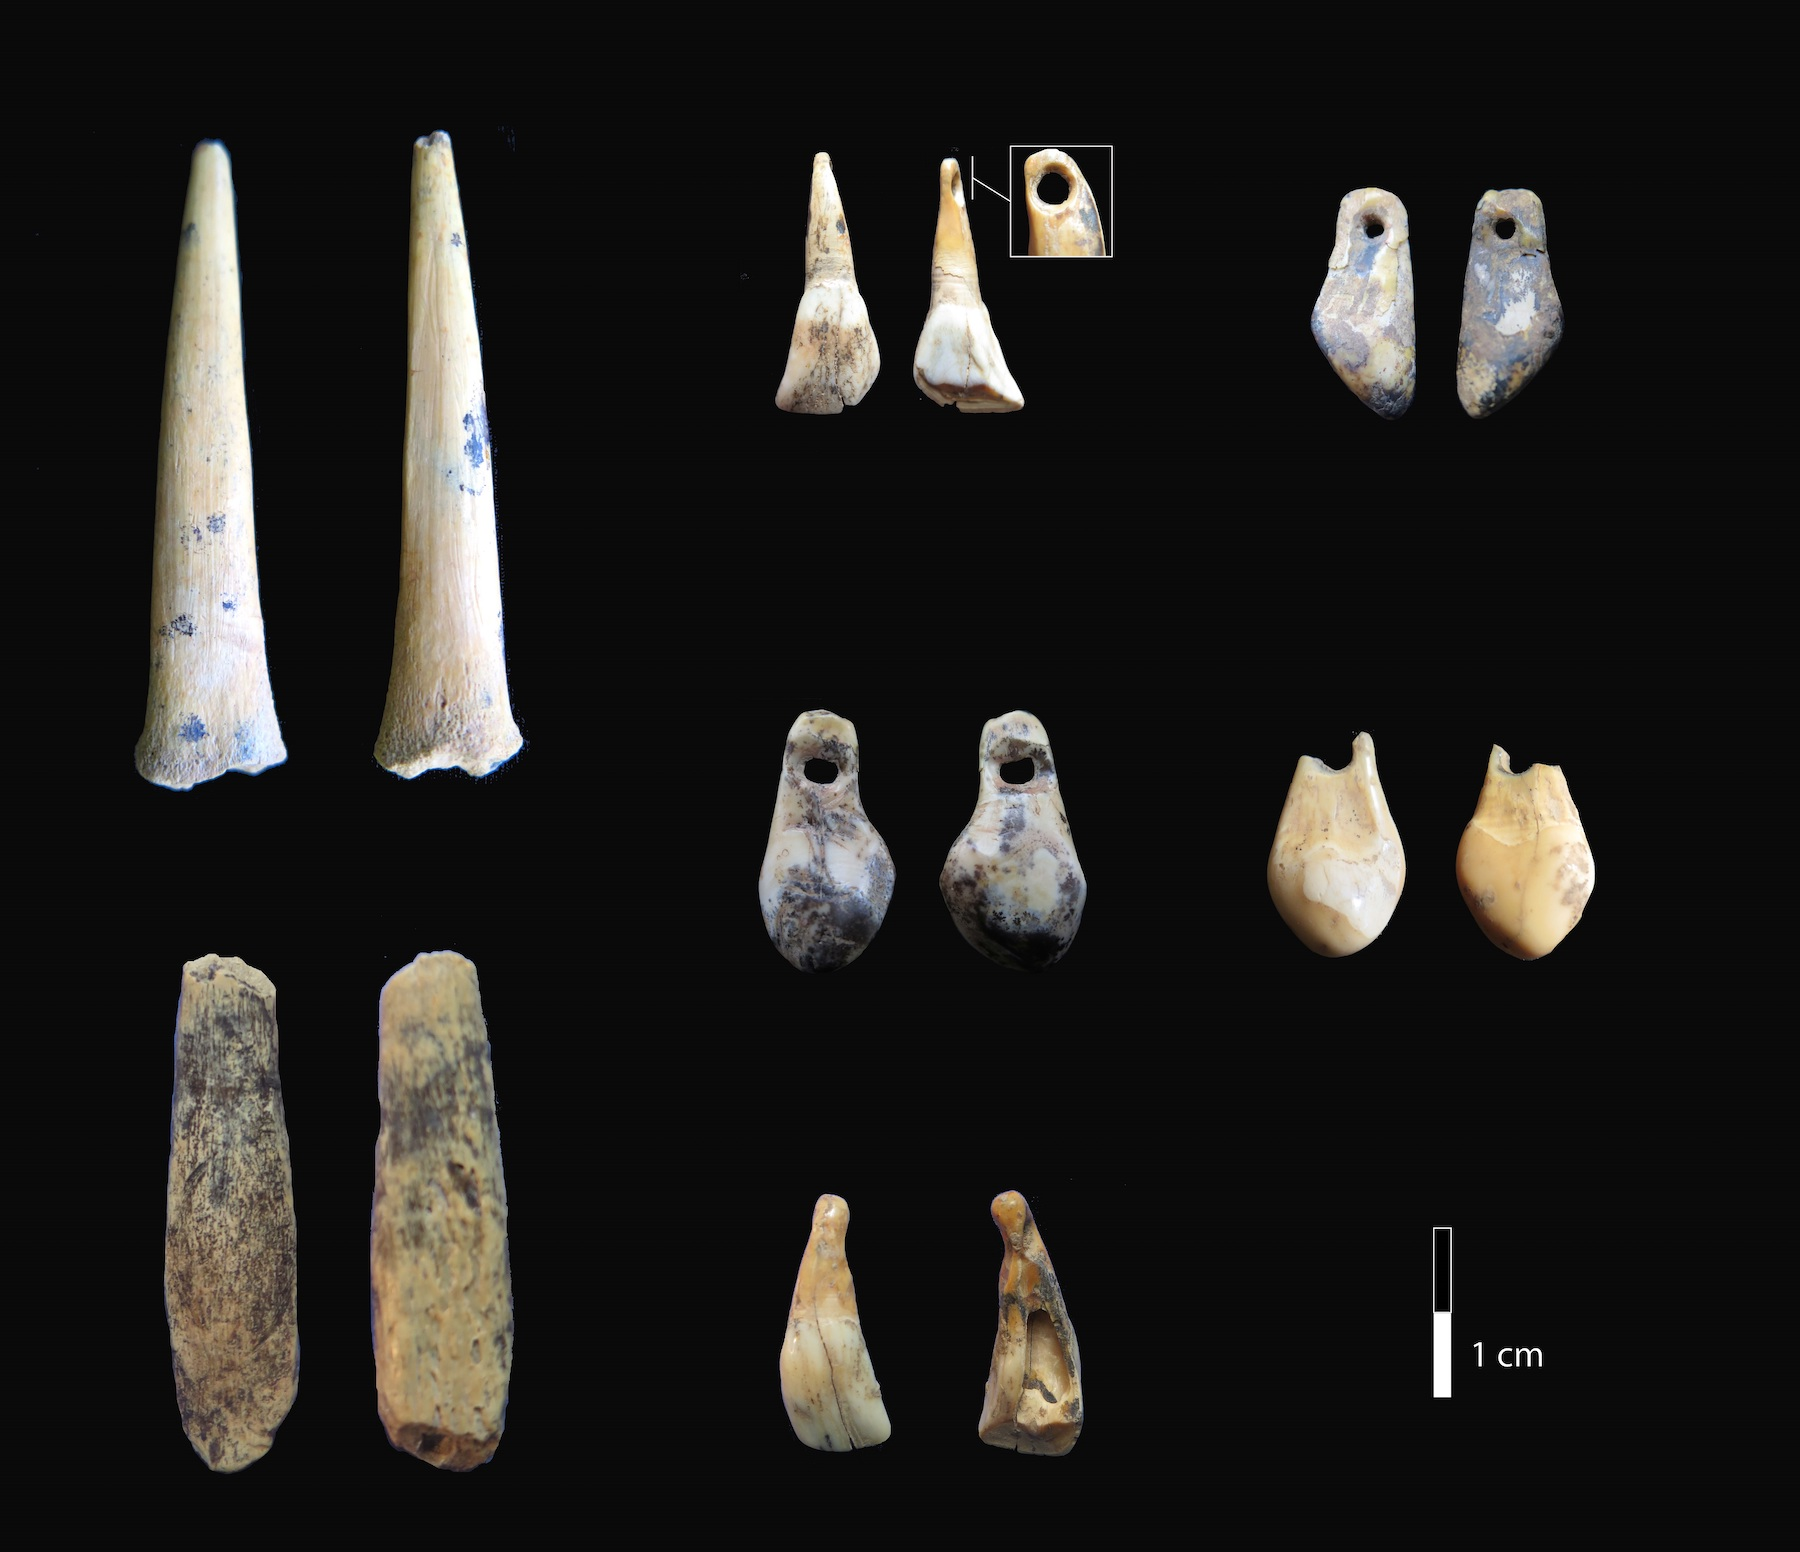 New Evidence Suggests Neanderthals And Denisovans Occupied The Same Siberian Cave